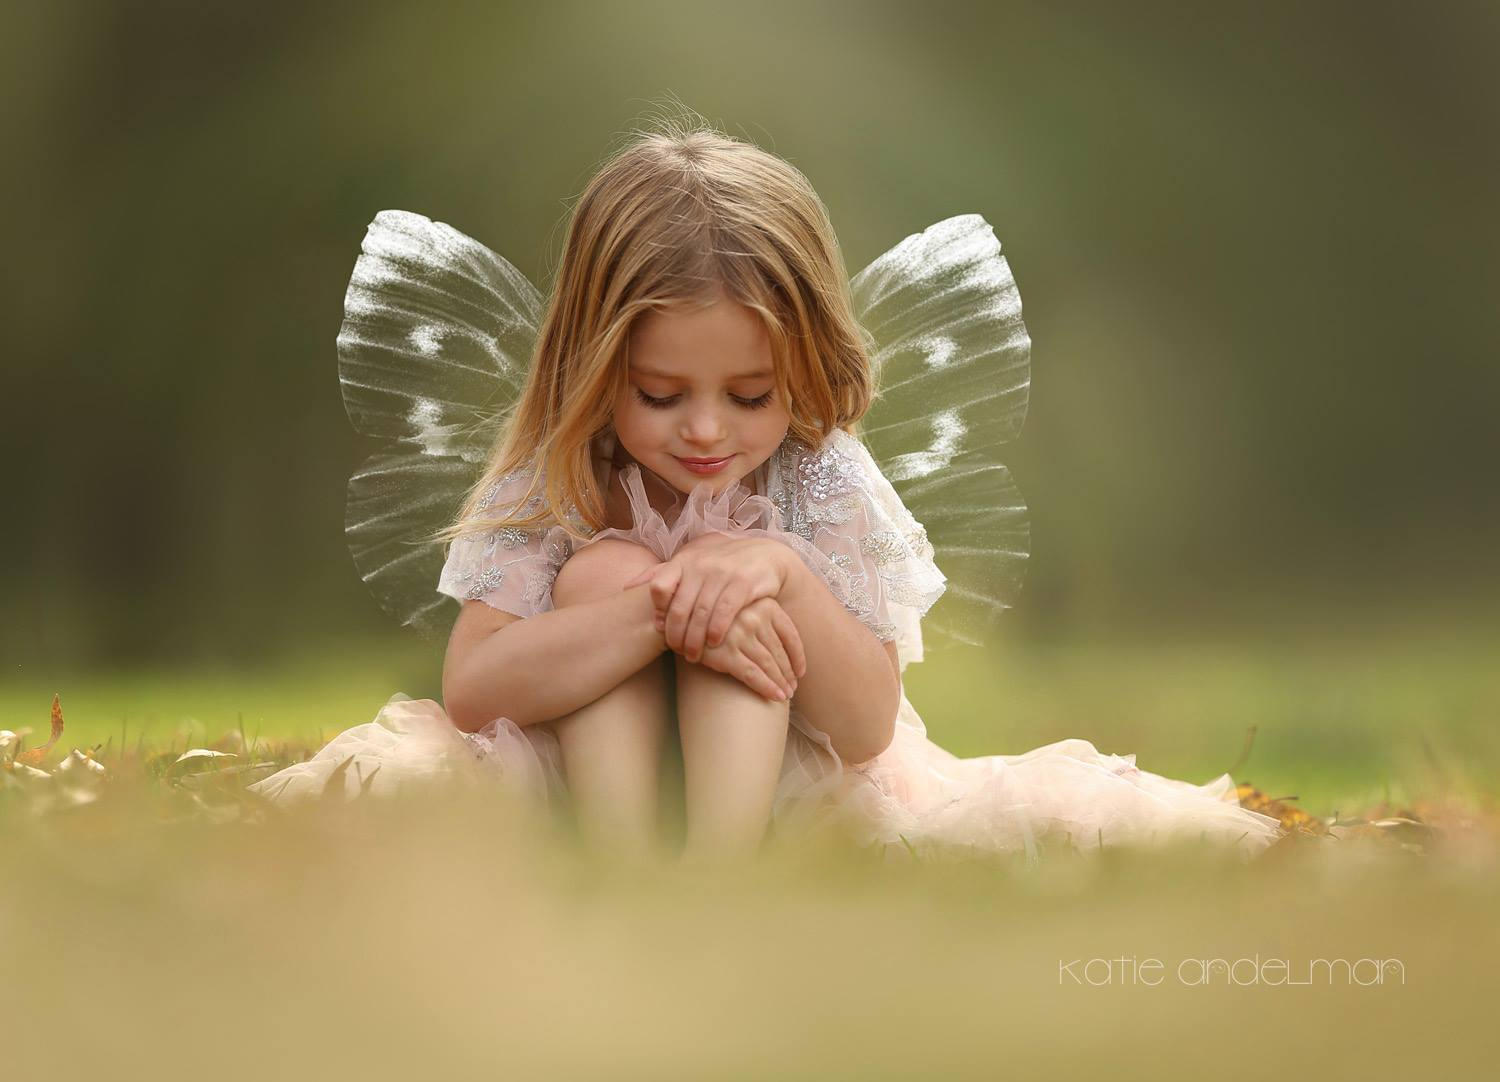 Cute little fairy Katie Andelman